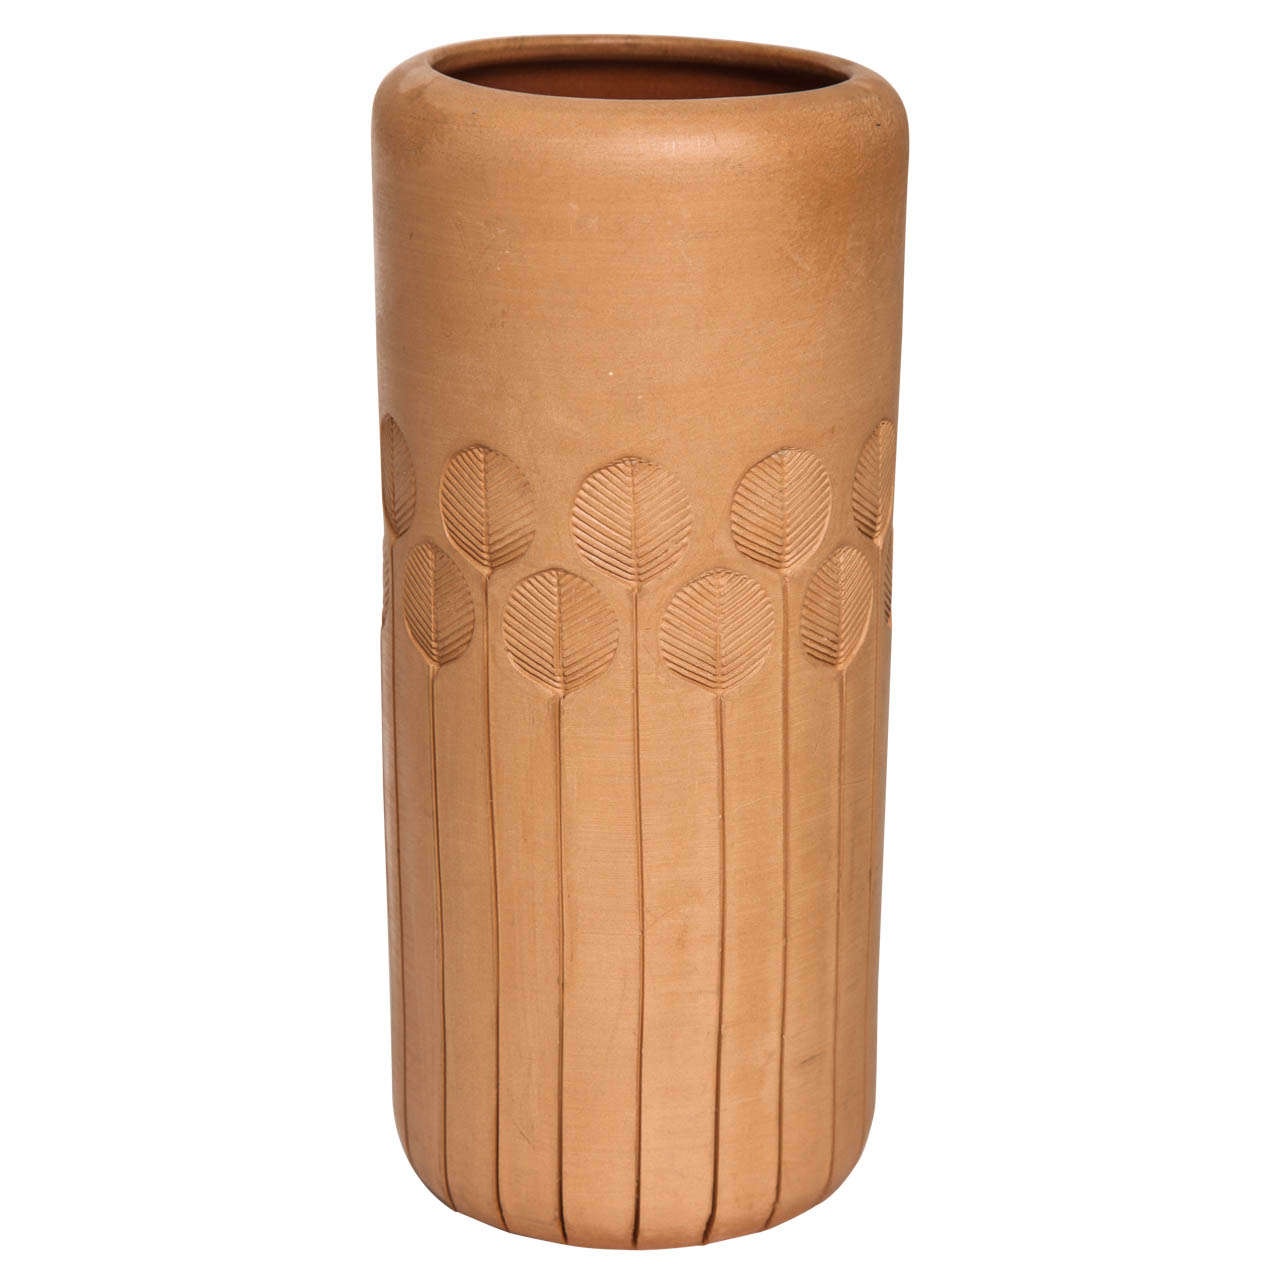 Unglazed Terracotta Vase by Bitossi for Raymor, circa 1960s